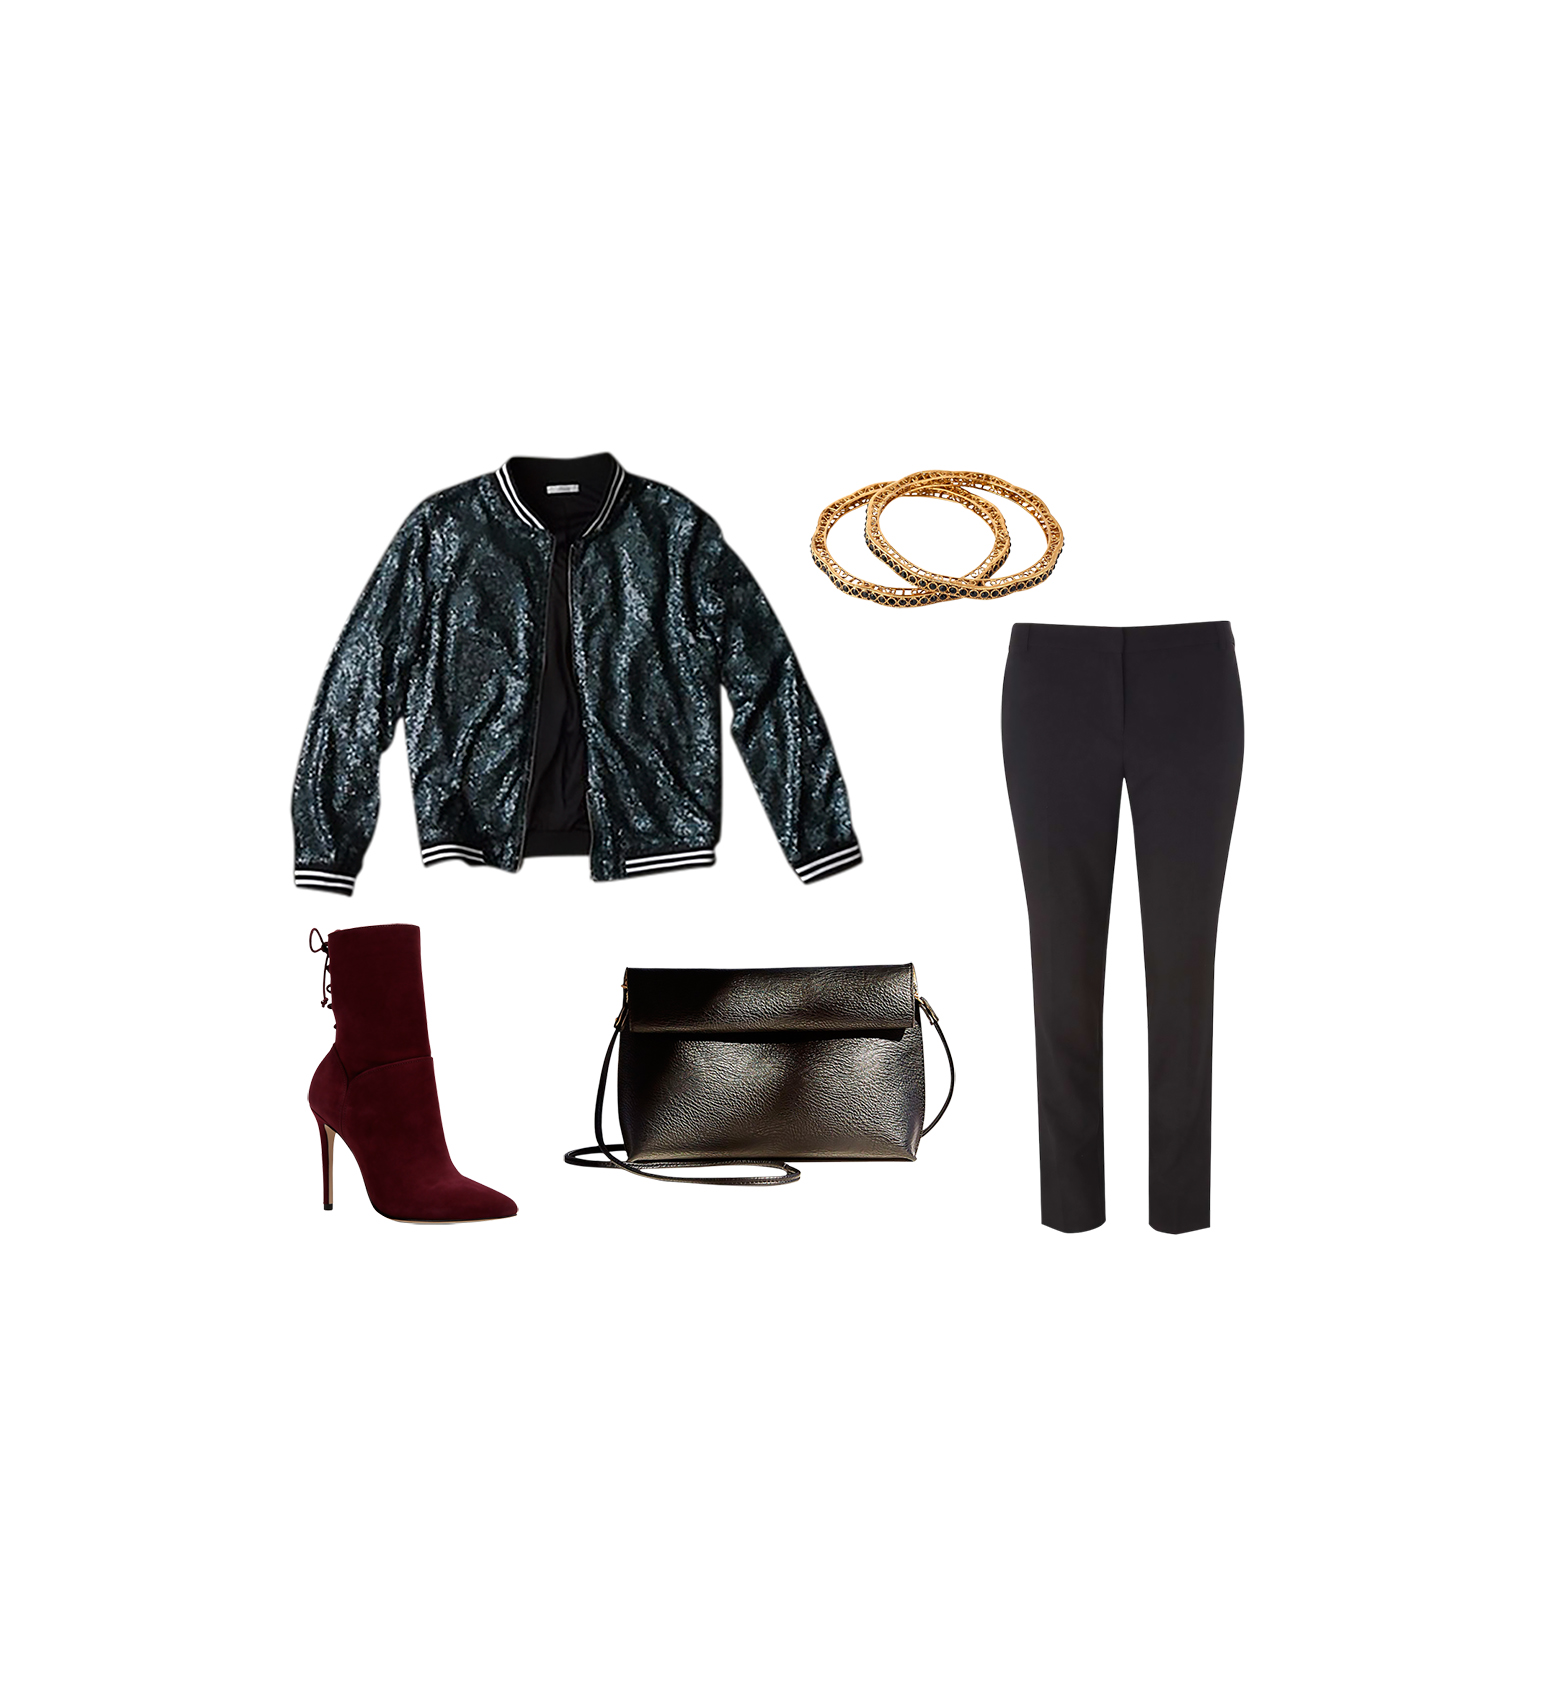 New Year's Outfits - The Jacket